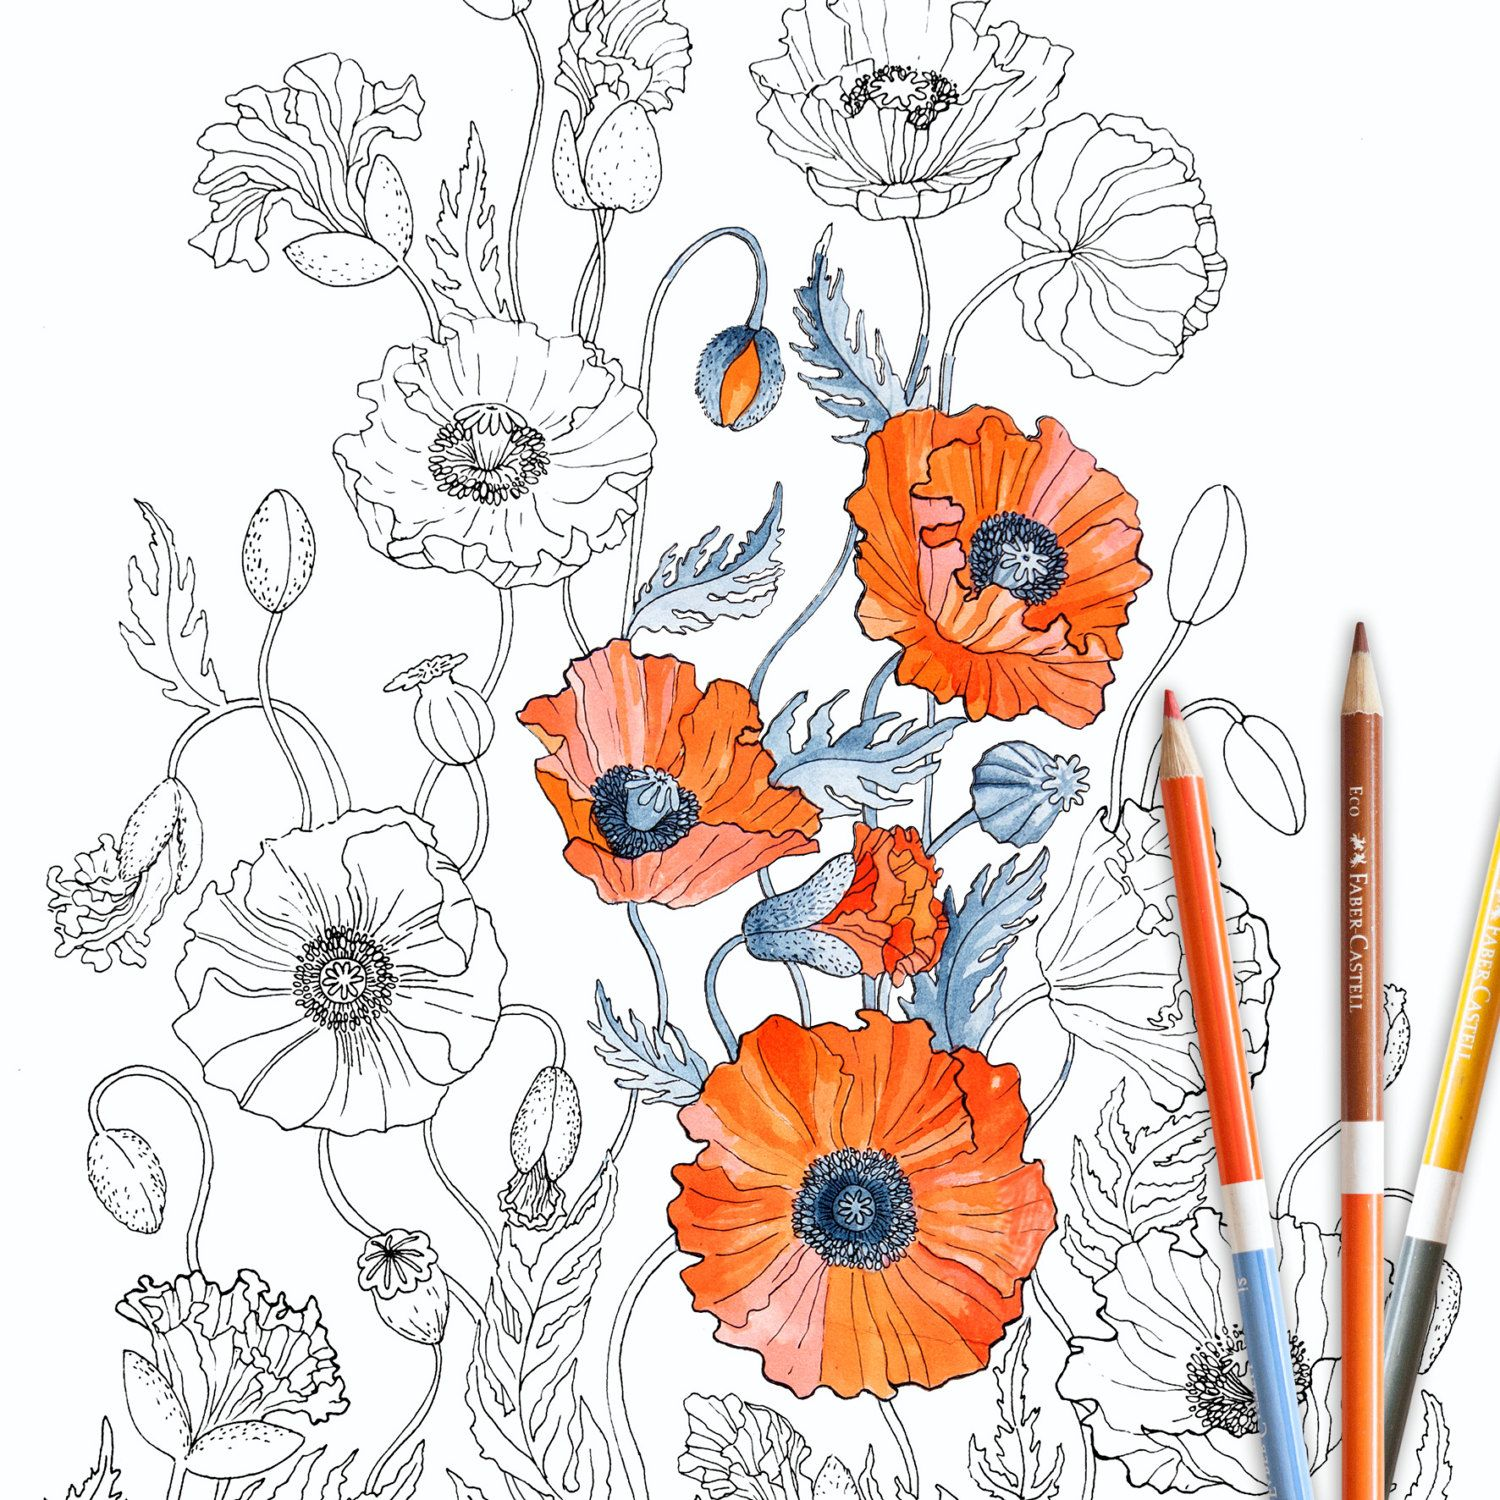 Zen colouring advanced art therapy collector edition - Poppies Coloring Page Instant Download Adult Coloring Page Coloring Book Botanical Floral Flower Poppy Art For